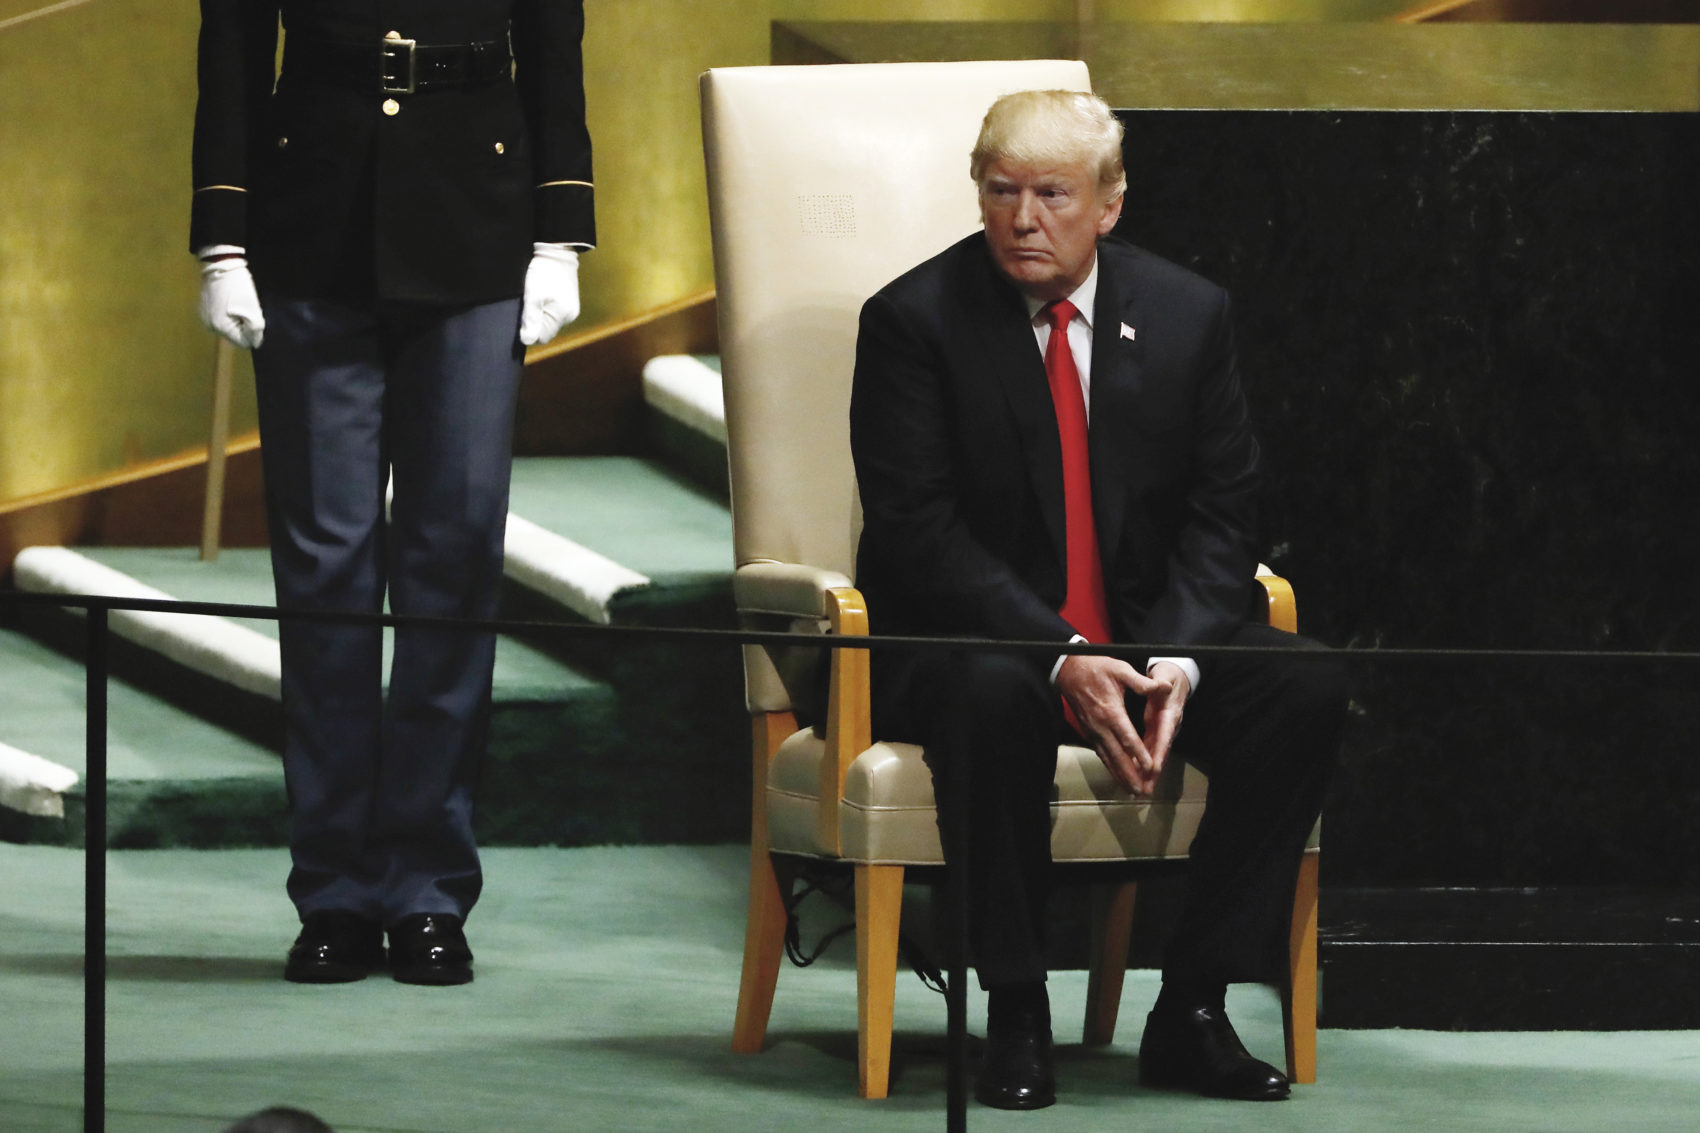 President Donald Trump sits following his address the 73rd session of the United Nations General Assembly, at U.N. headquarters, Tuesday, Sept. 25, 2018. (Richard Drew/AP)